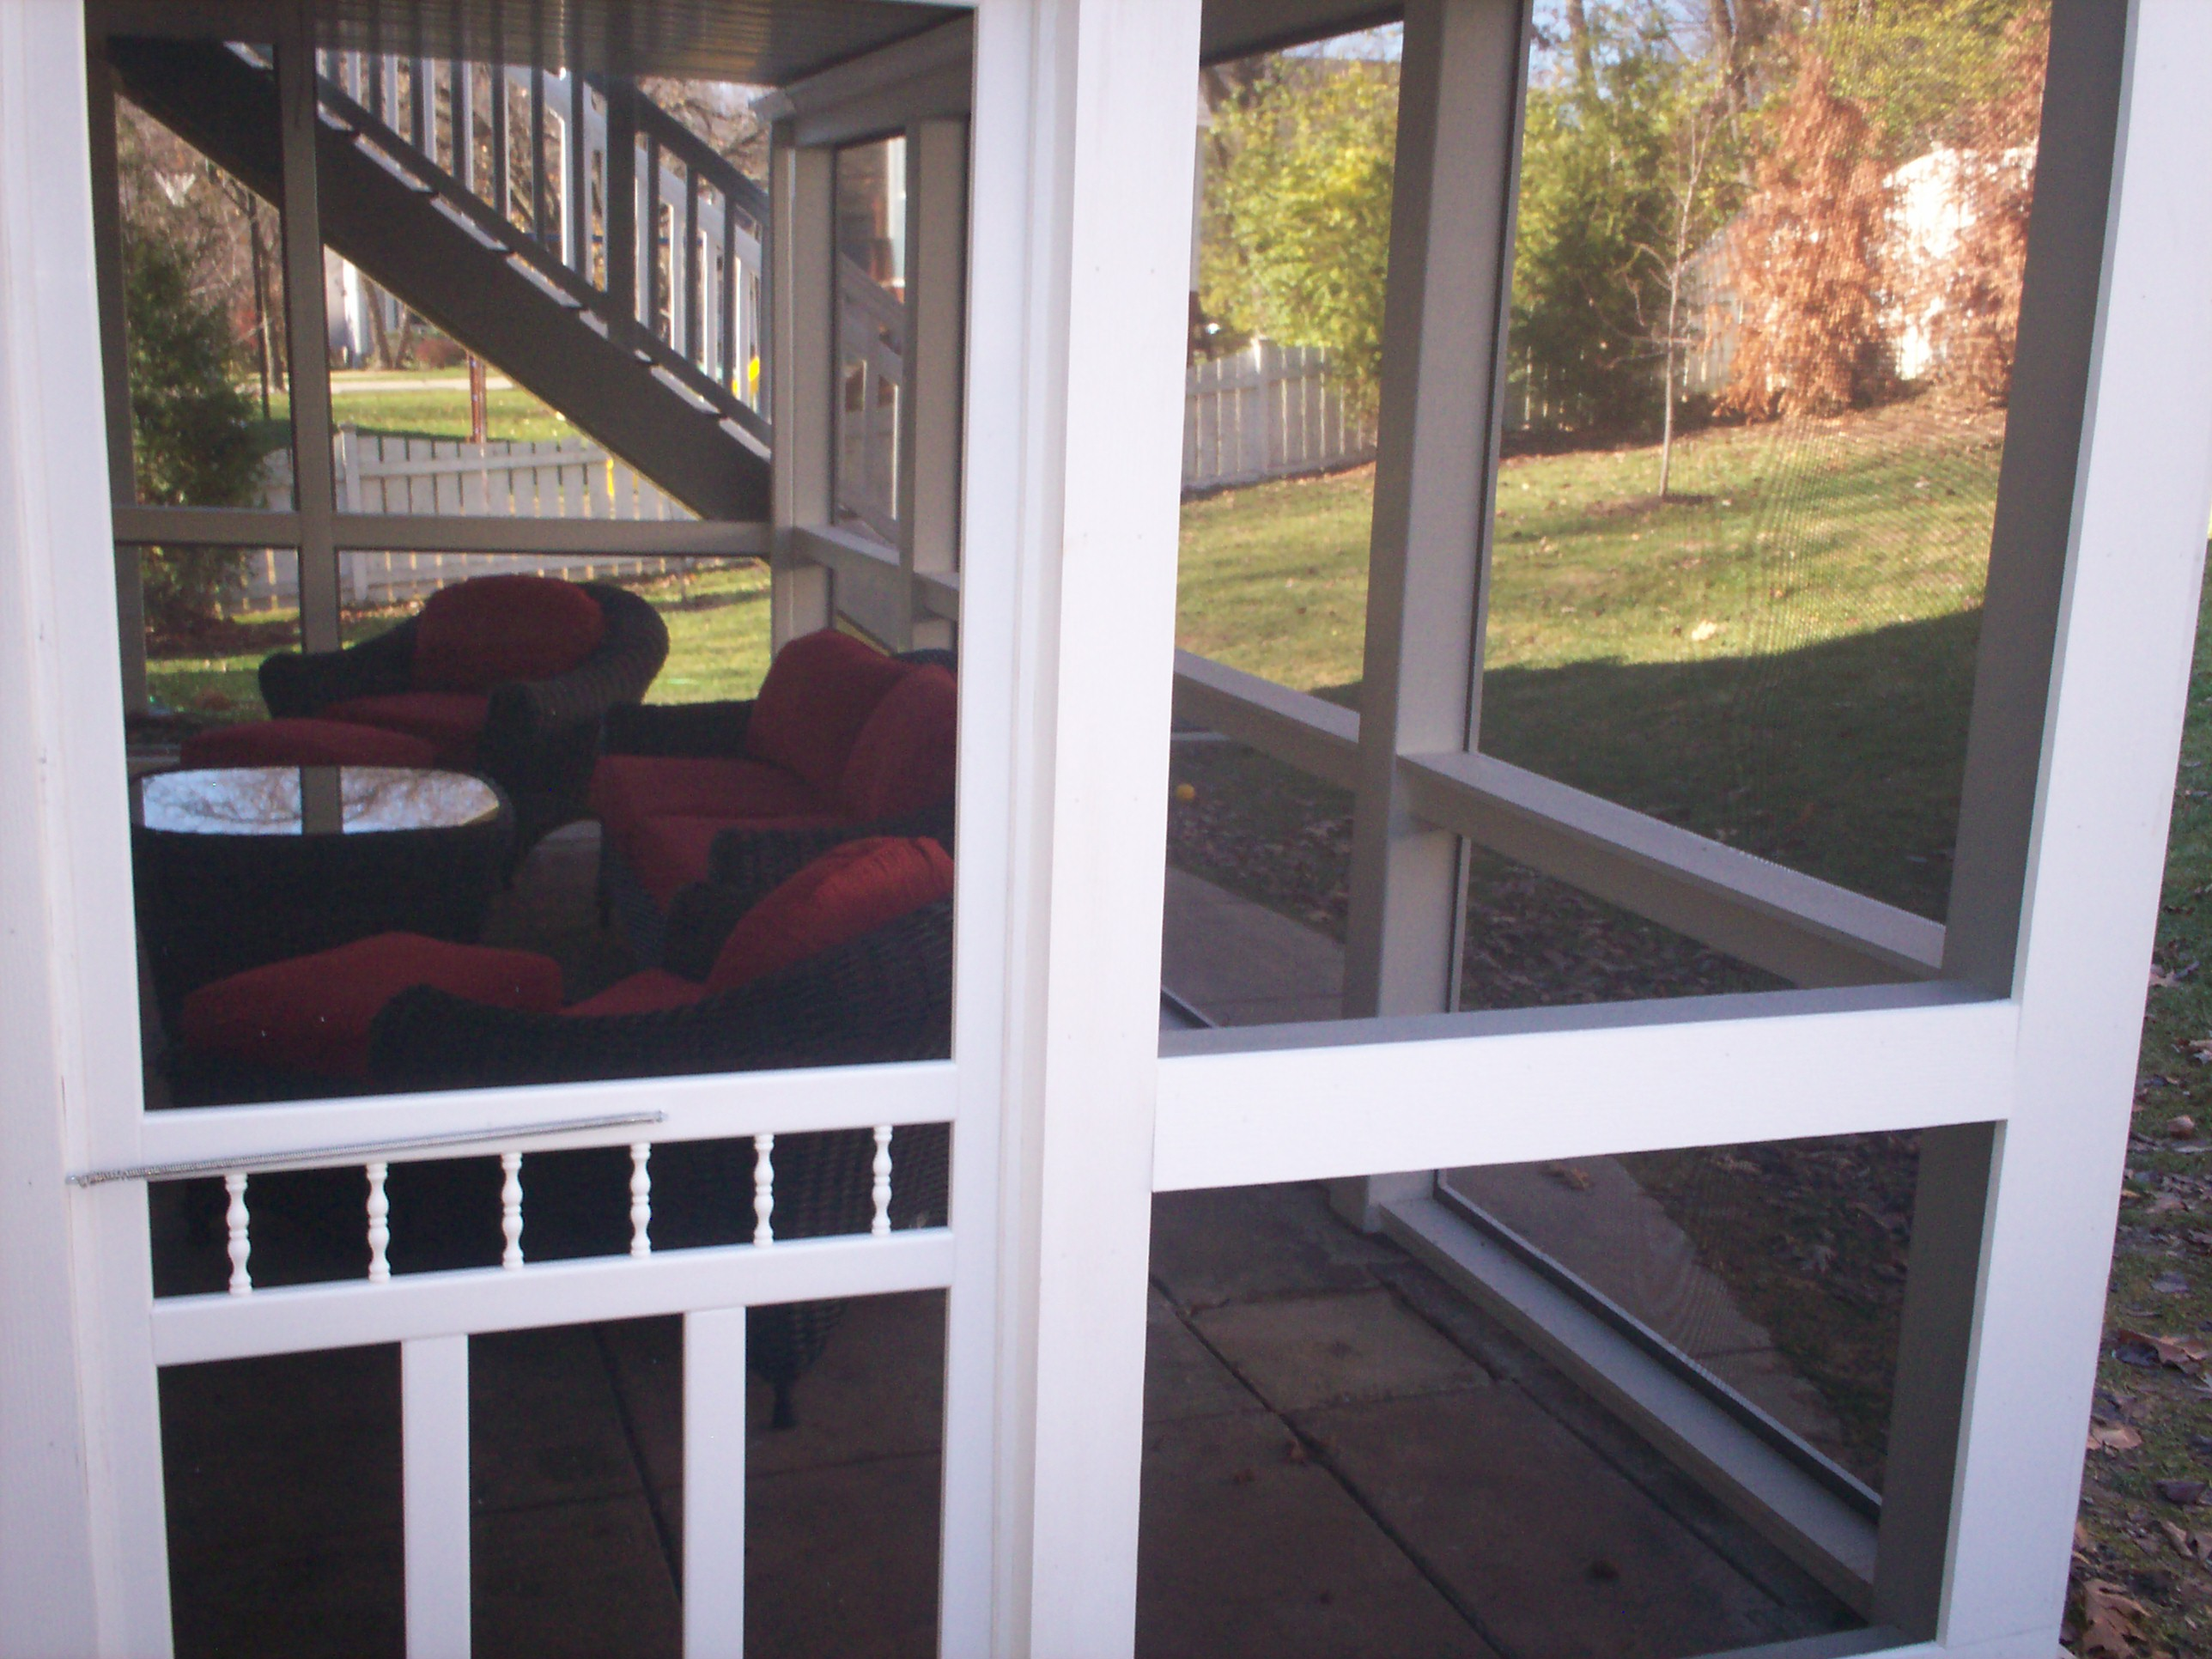 Outdoor Rooms: Expanding your St. Louis or St. Charles ... on Backyard Patio Enclosure Ideas  id=33565